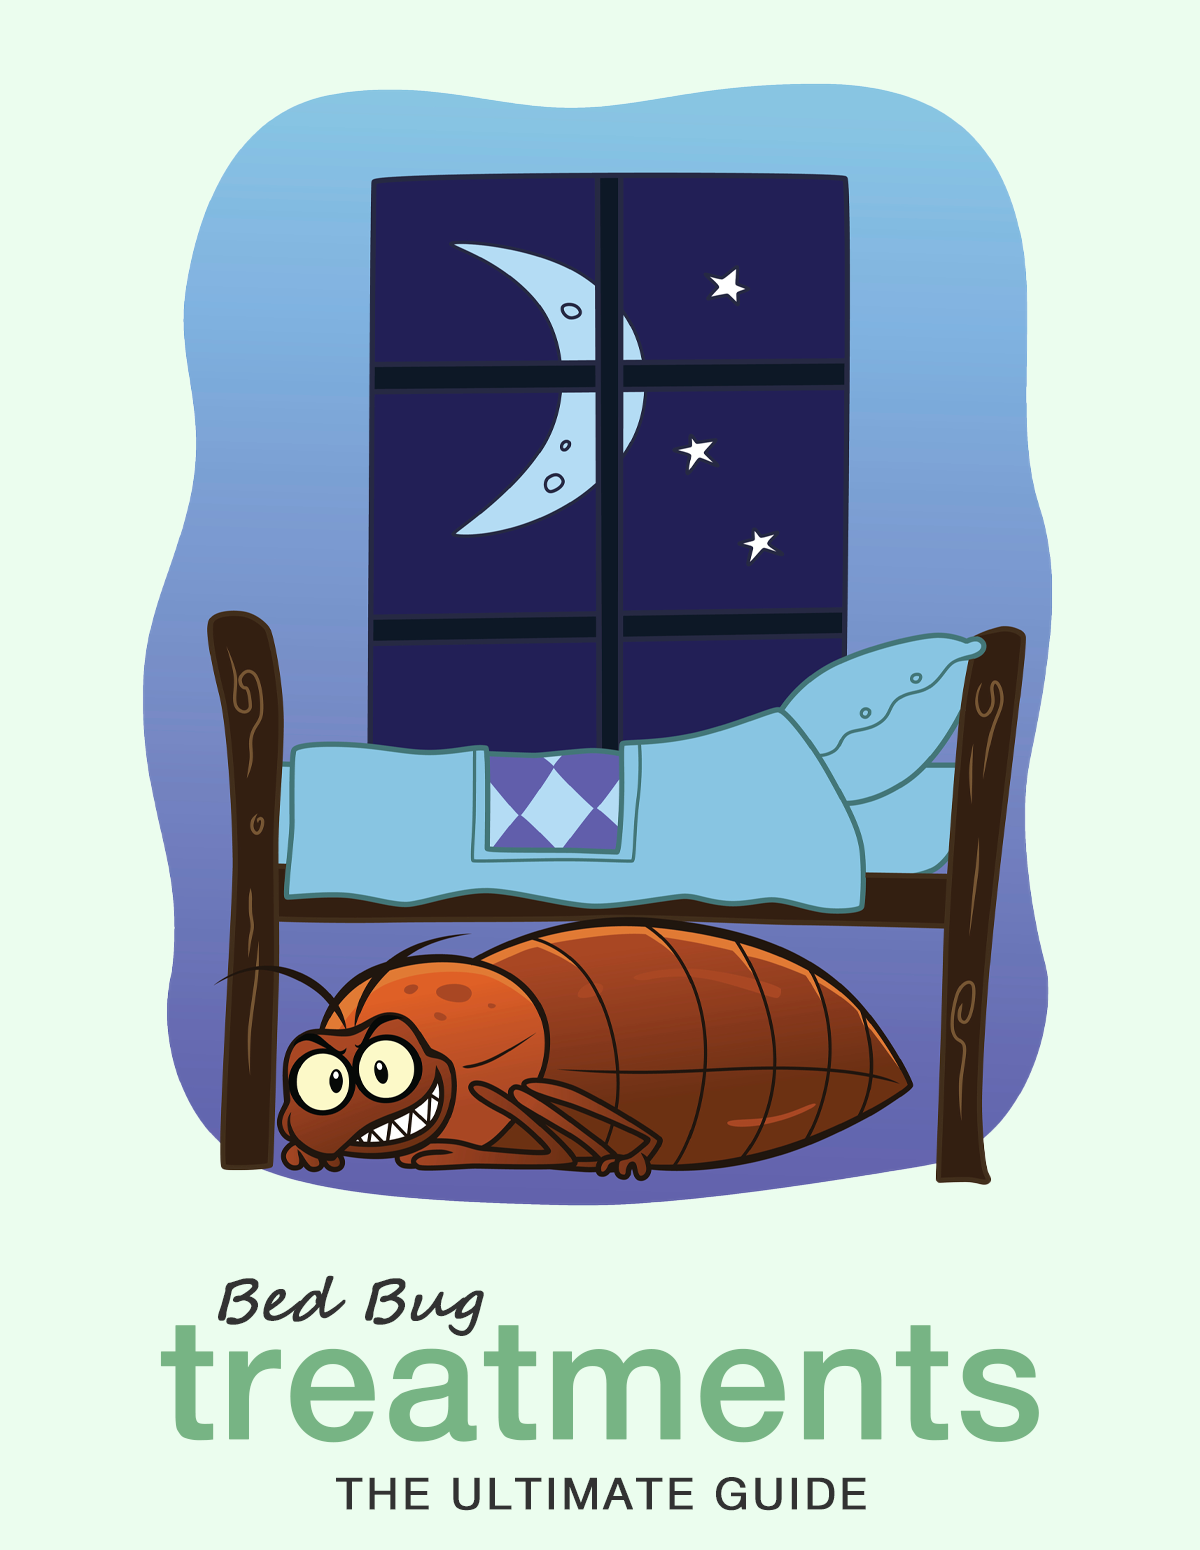 Bed Bug treatments THE ULTIMATE GUIDE